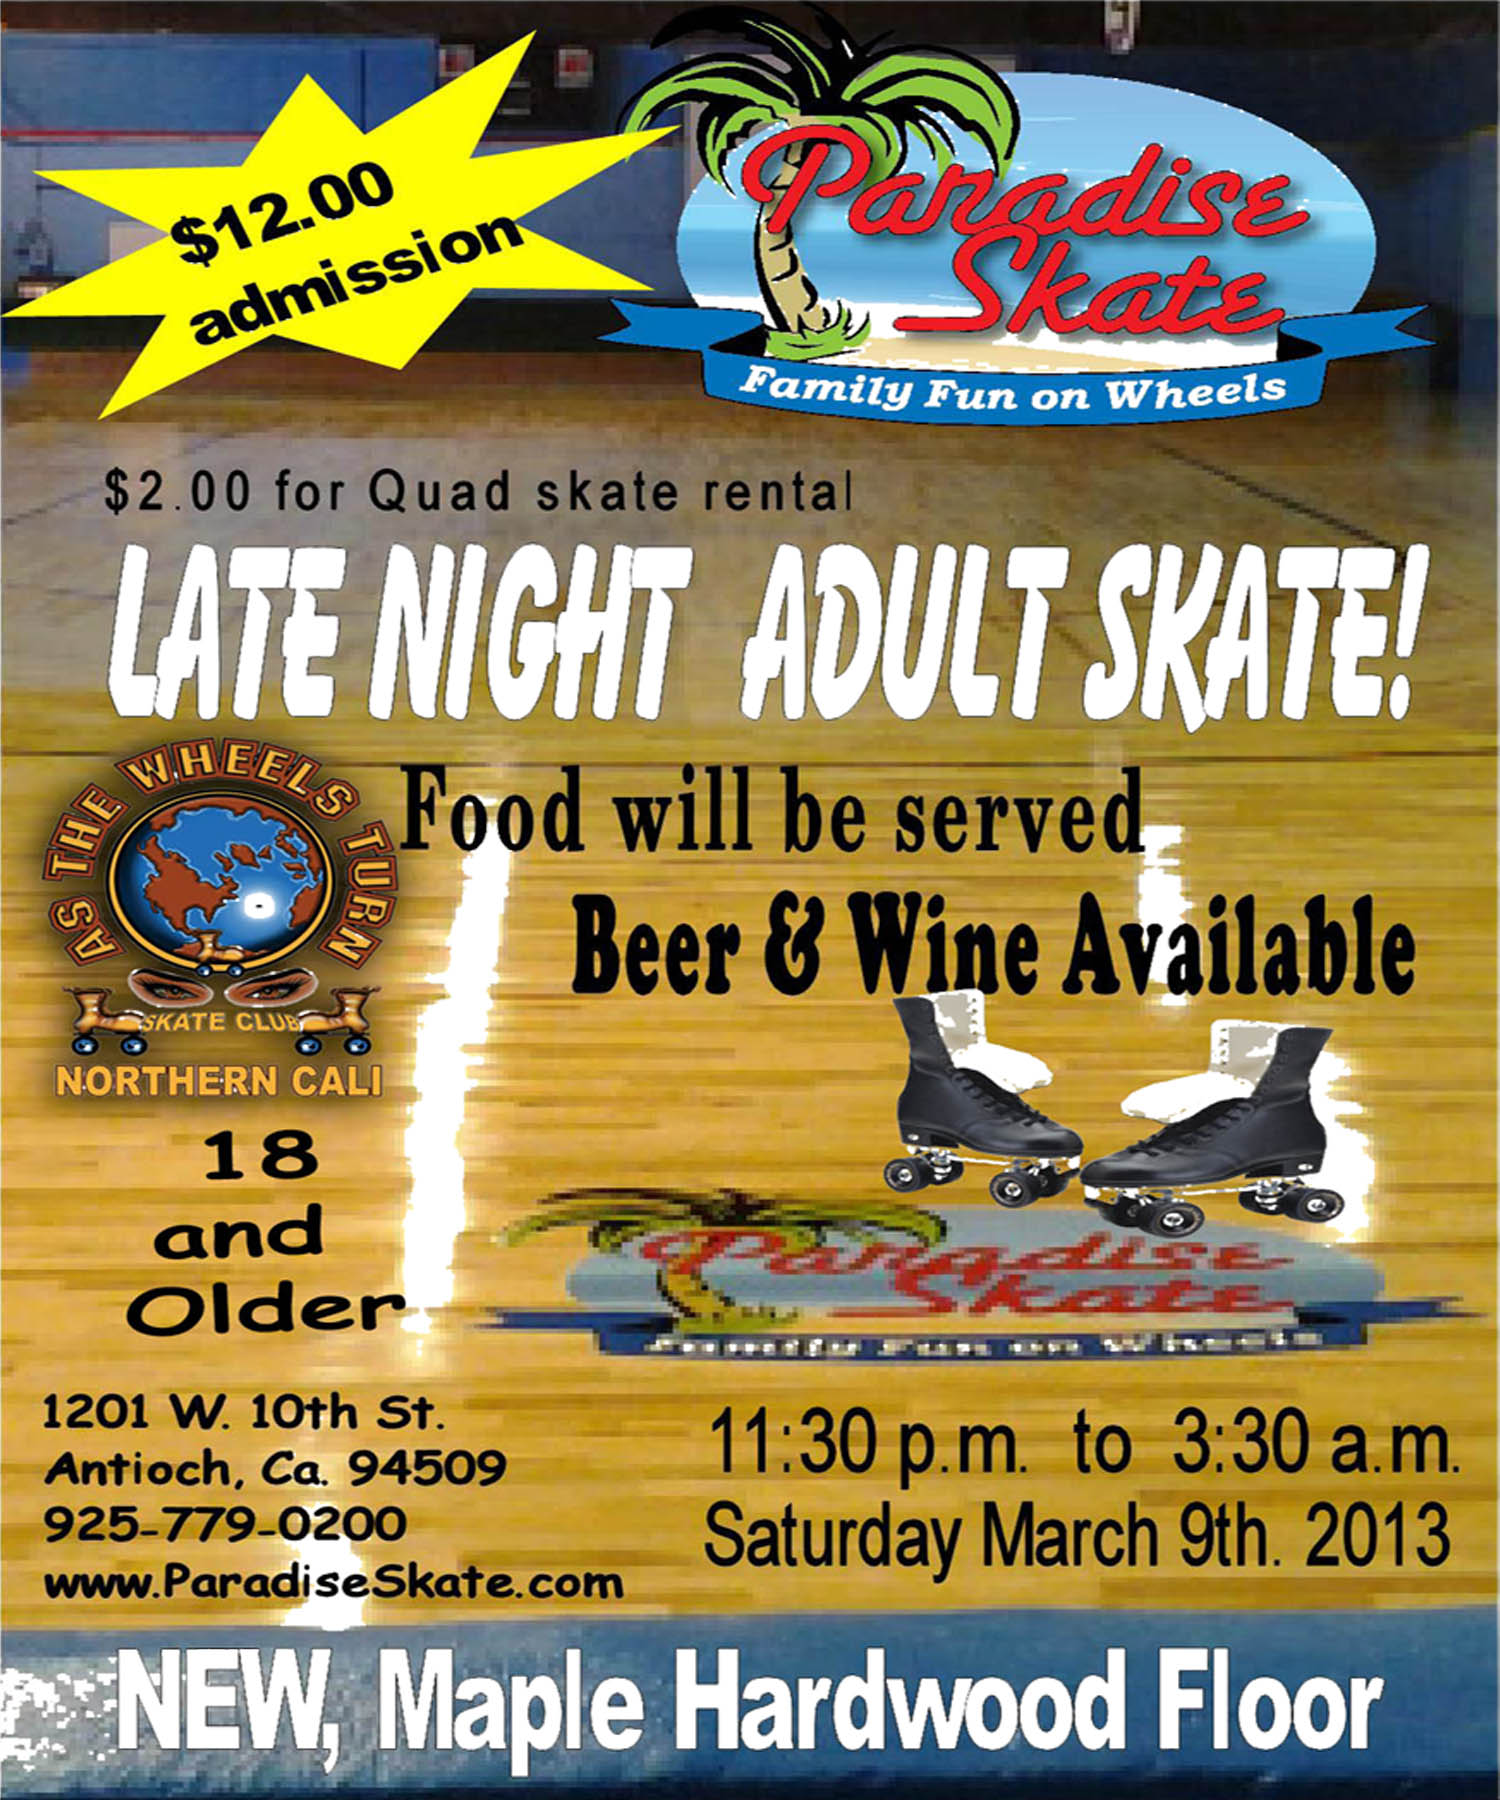 March9thParadiseSkate Late Night Adult Skate Night at Paradise Skate Roller Rink this Saturday